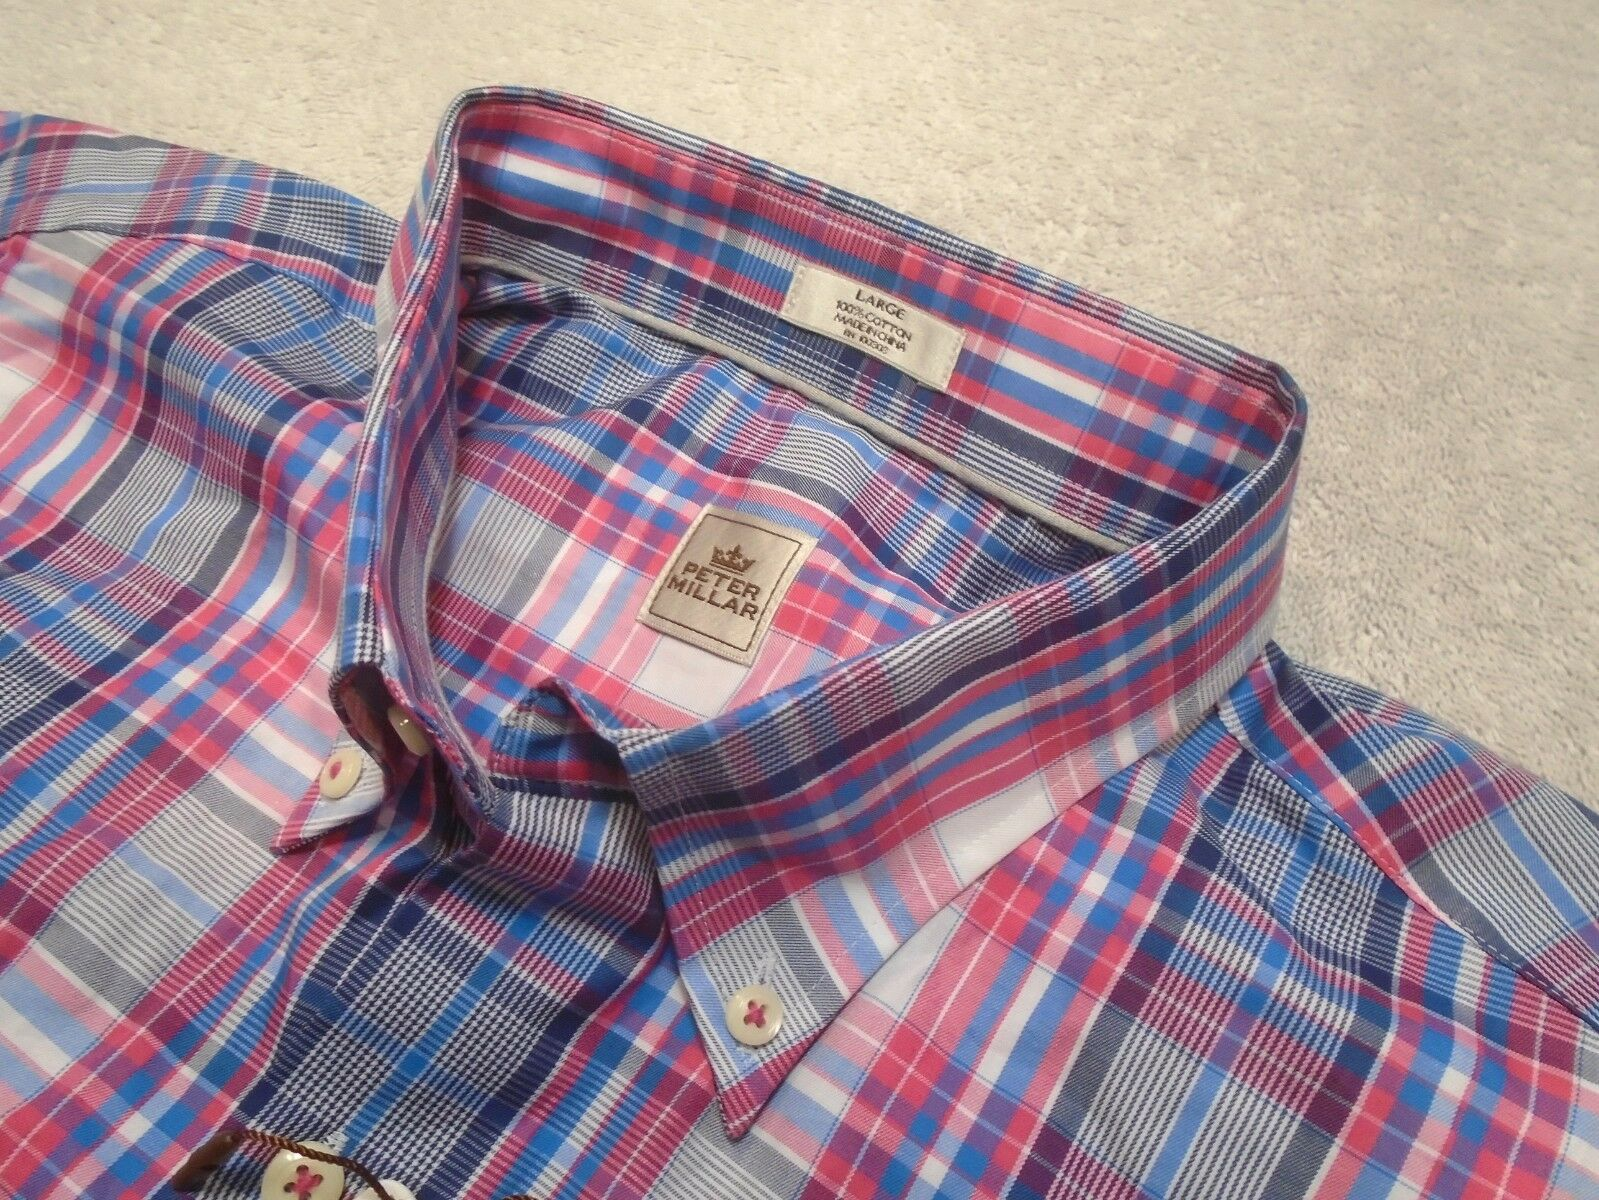 Peter Millar 100% Cotton bluee & Pink Plaid Pattern Sport Shirt NWT Large